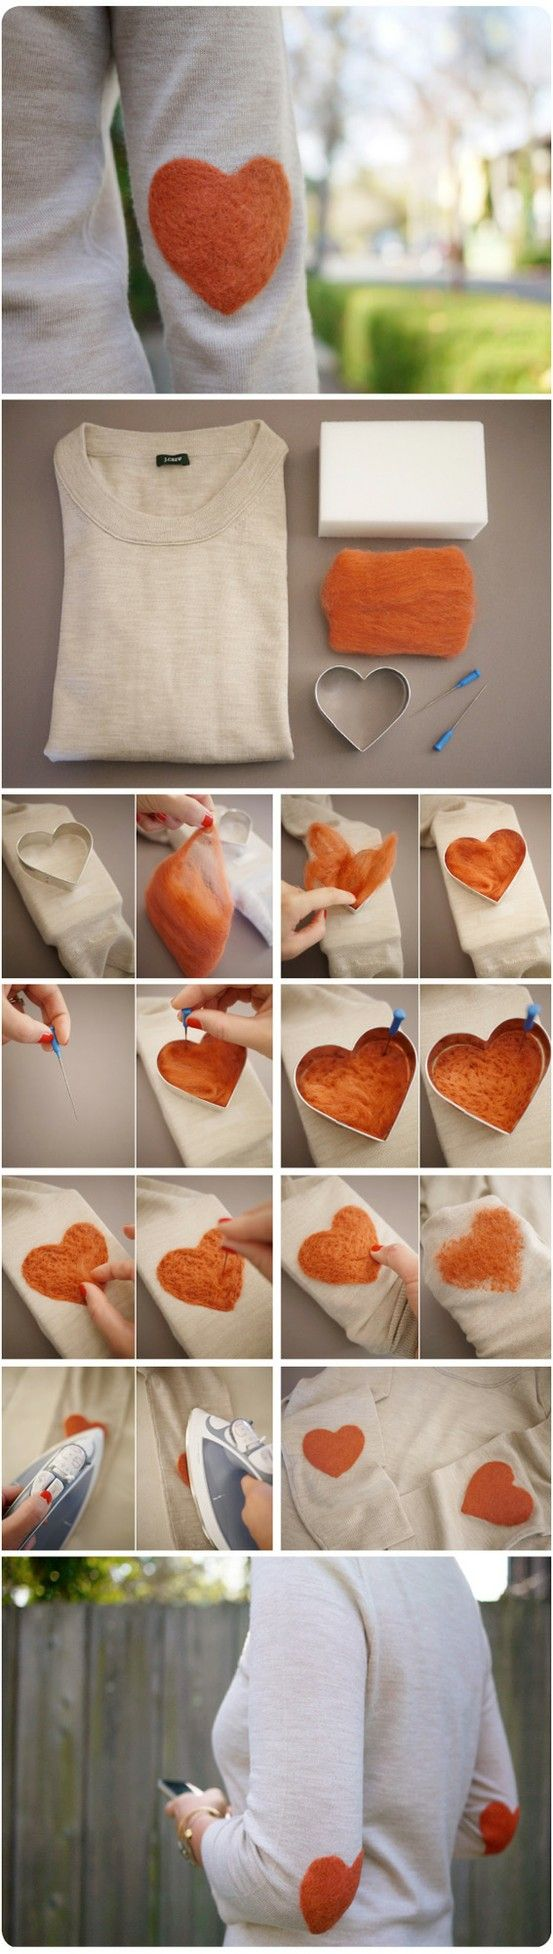 Must do! I have some cardigans that need to be mended. Maybe not hearts though.